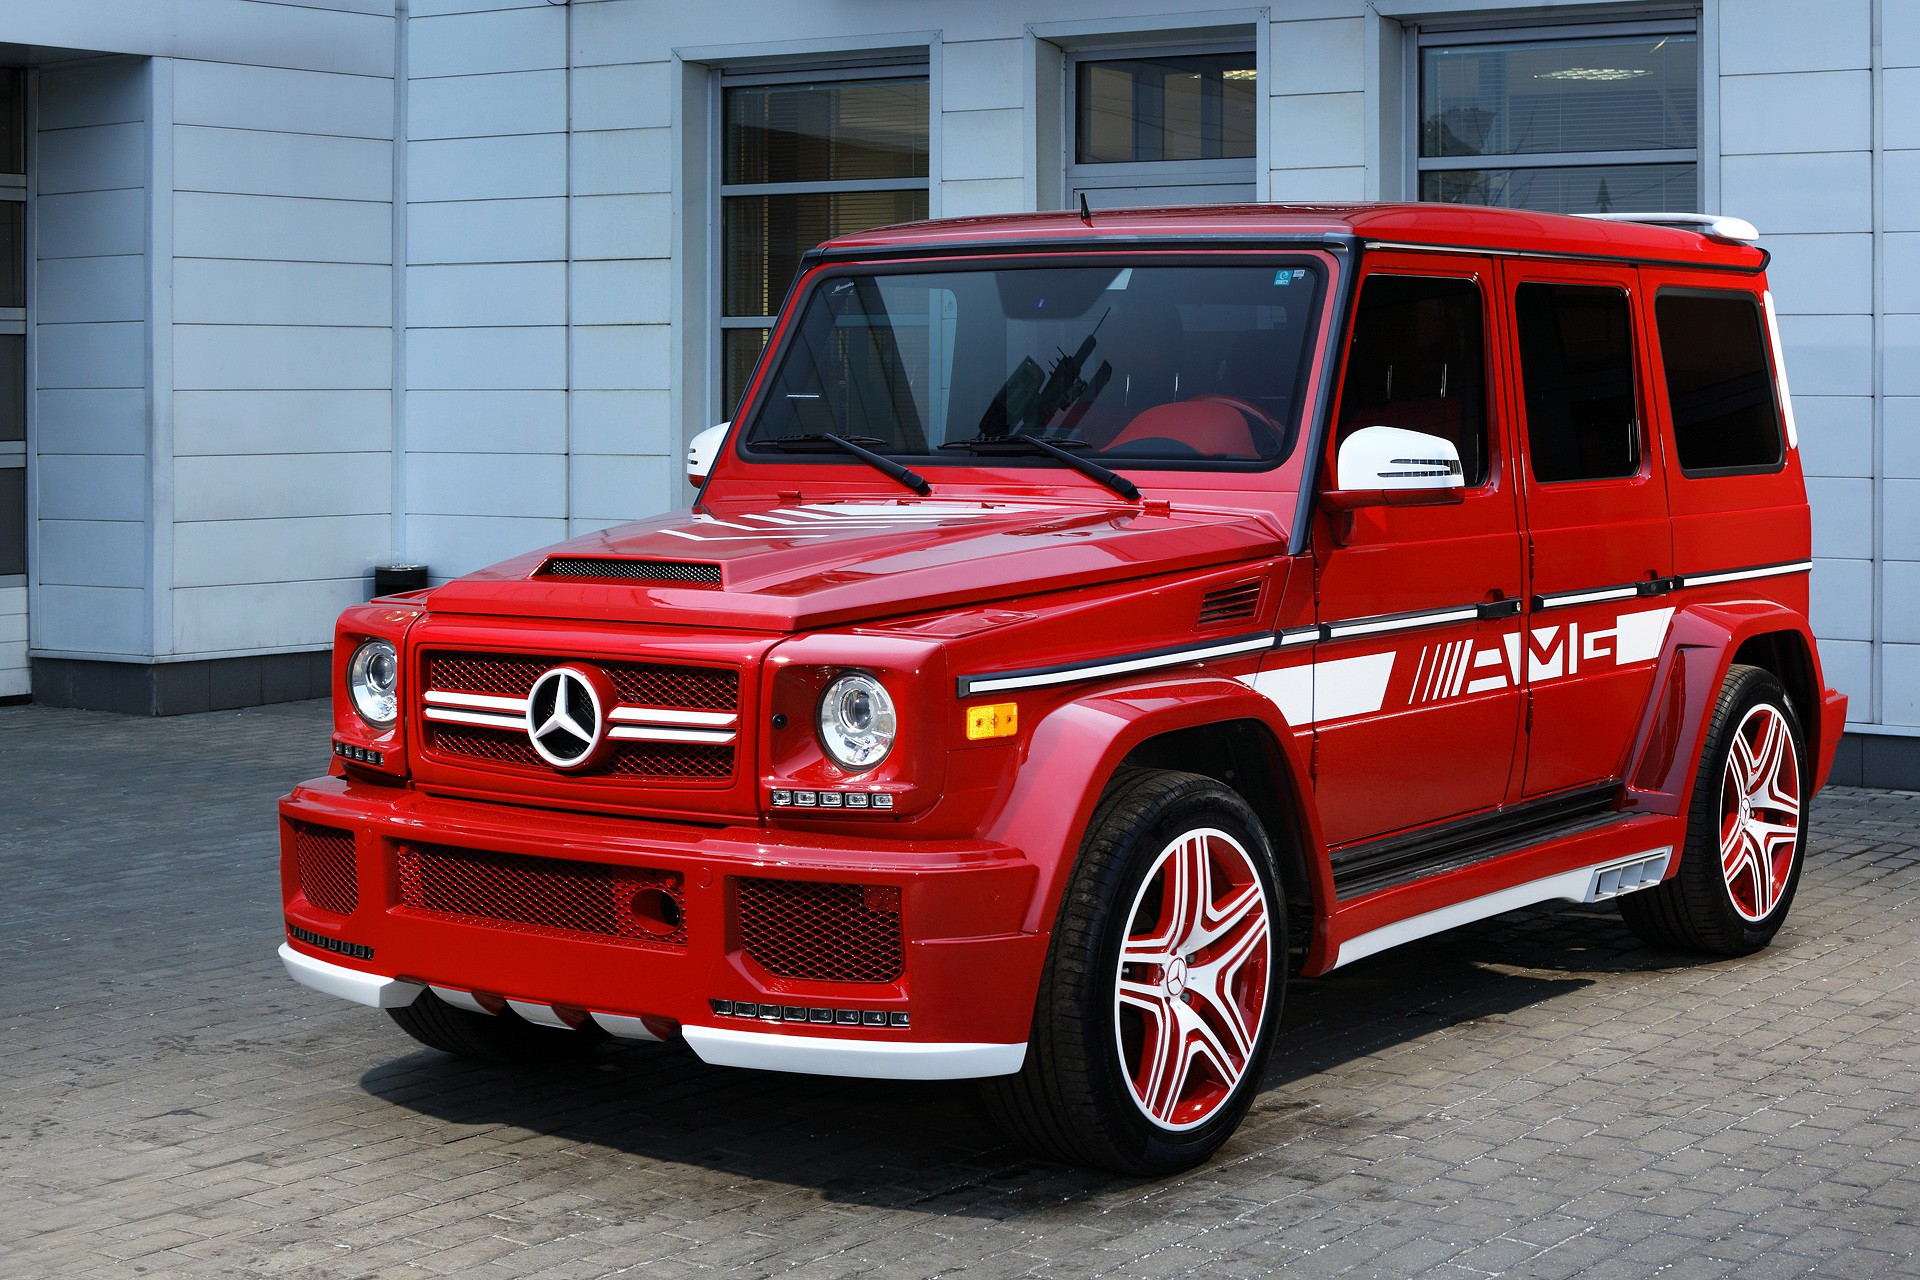 Mercedes Amg G63 Red This Car Is On Fire Mercedesblog